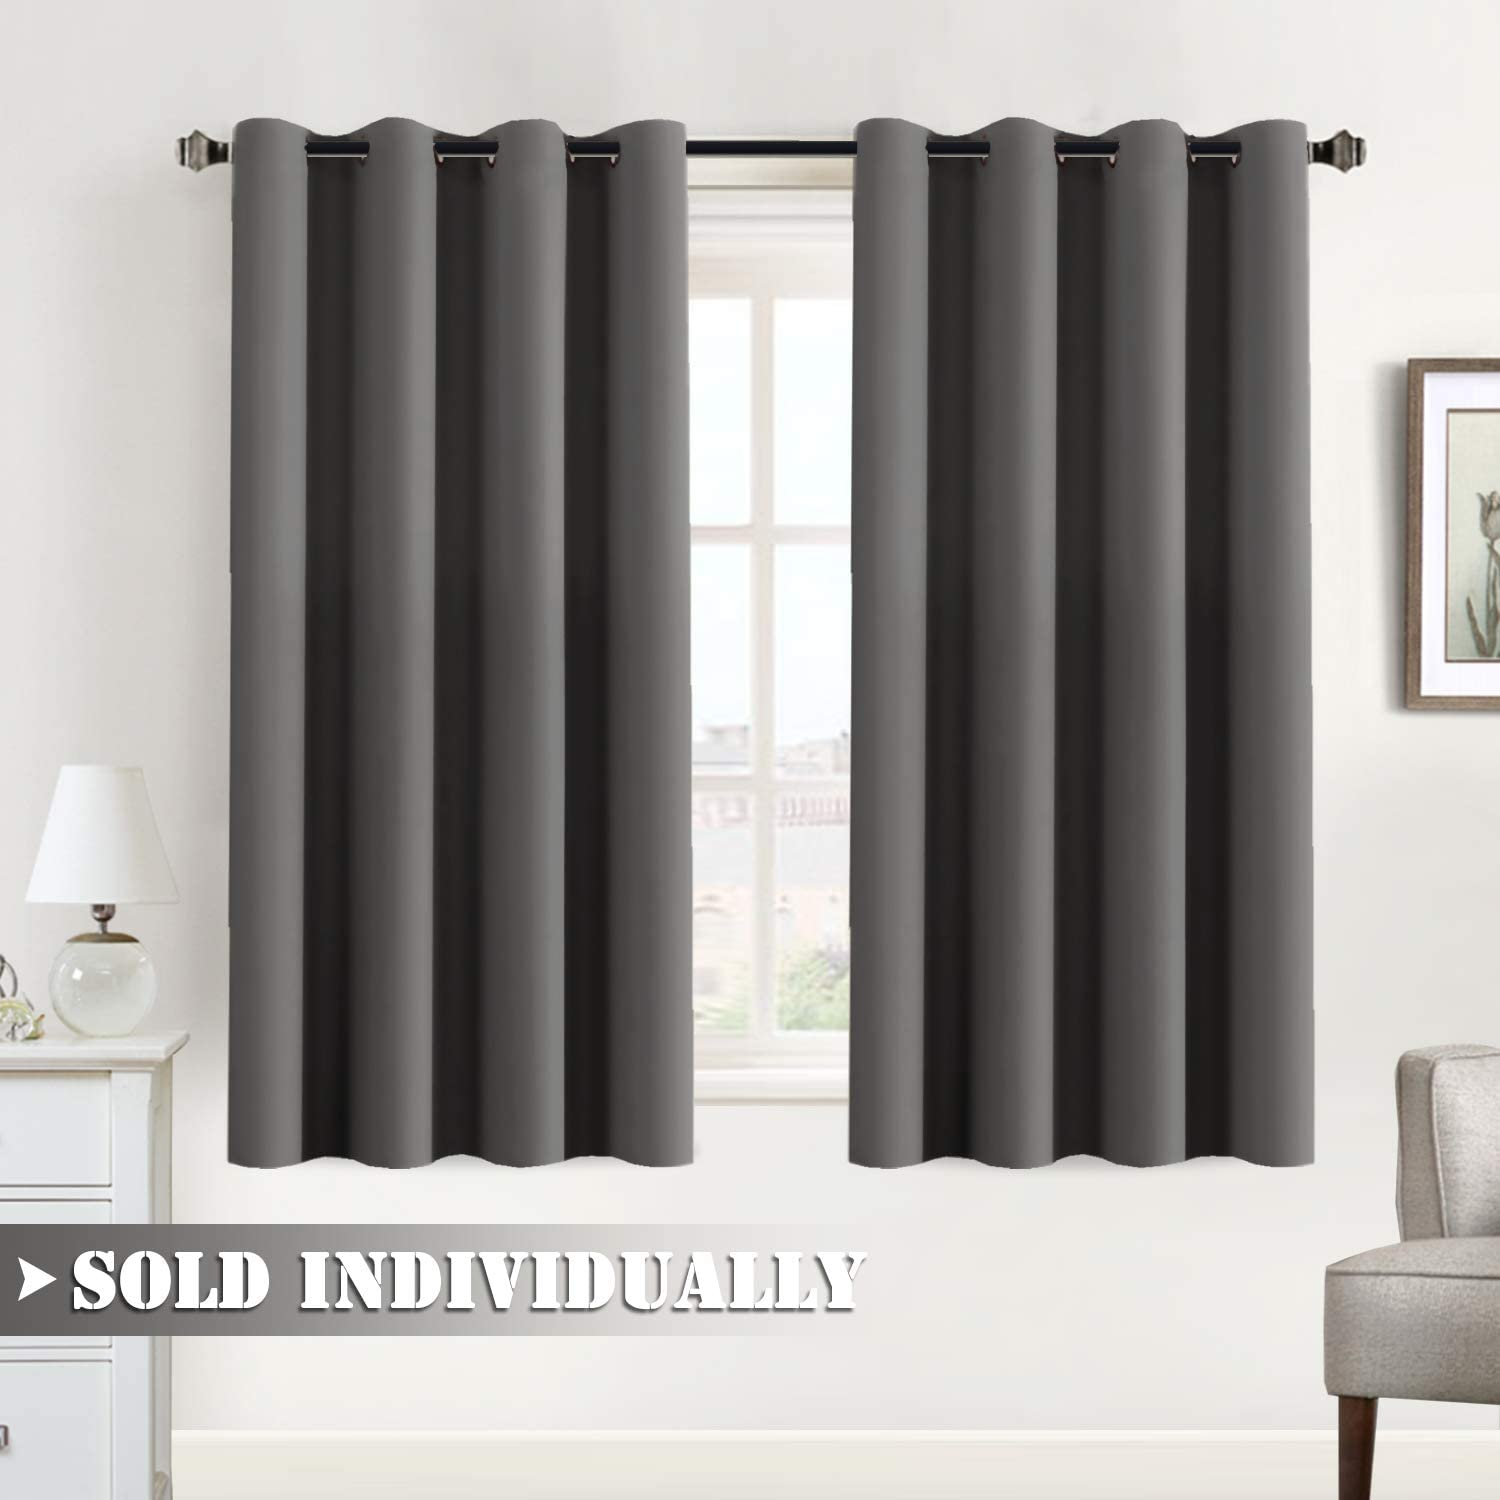 Flamingo P Blackout Curtain for Bedroom/Living Room Thermal Insulated Energy Efficient Window Treatment Curtain Drapes Draperies Soft Thick Smooth Room Darkening Single Panel 52